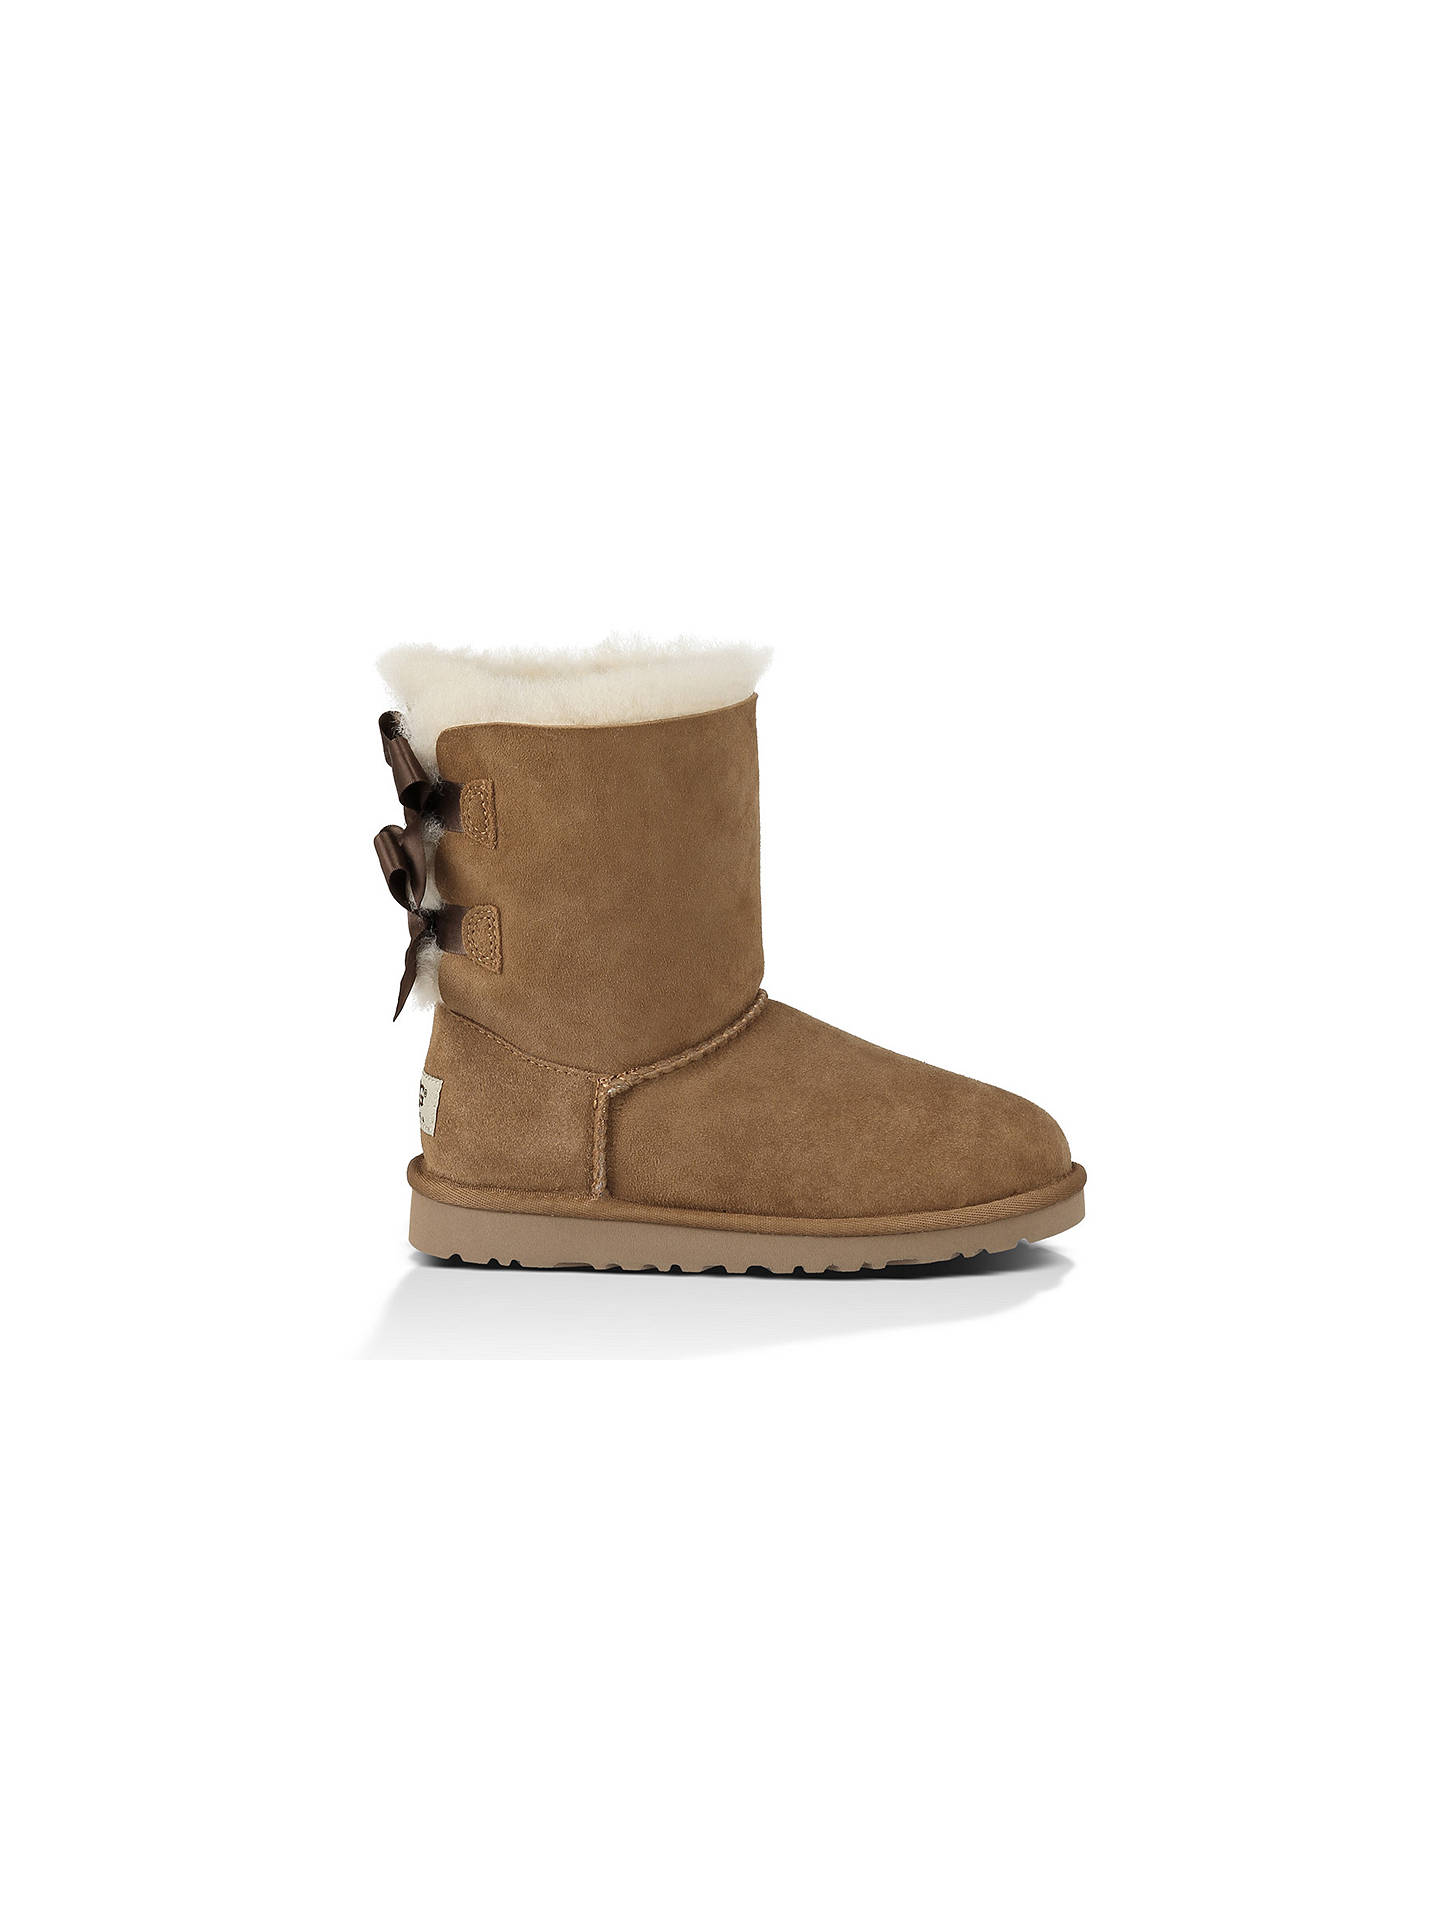 0e9b5939cc8 UGG Children's Bailey Bow Boots, Chestnut at John Lewis & Partners